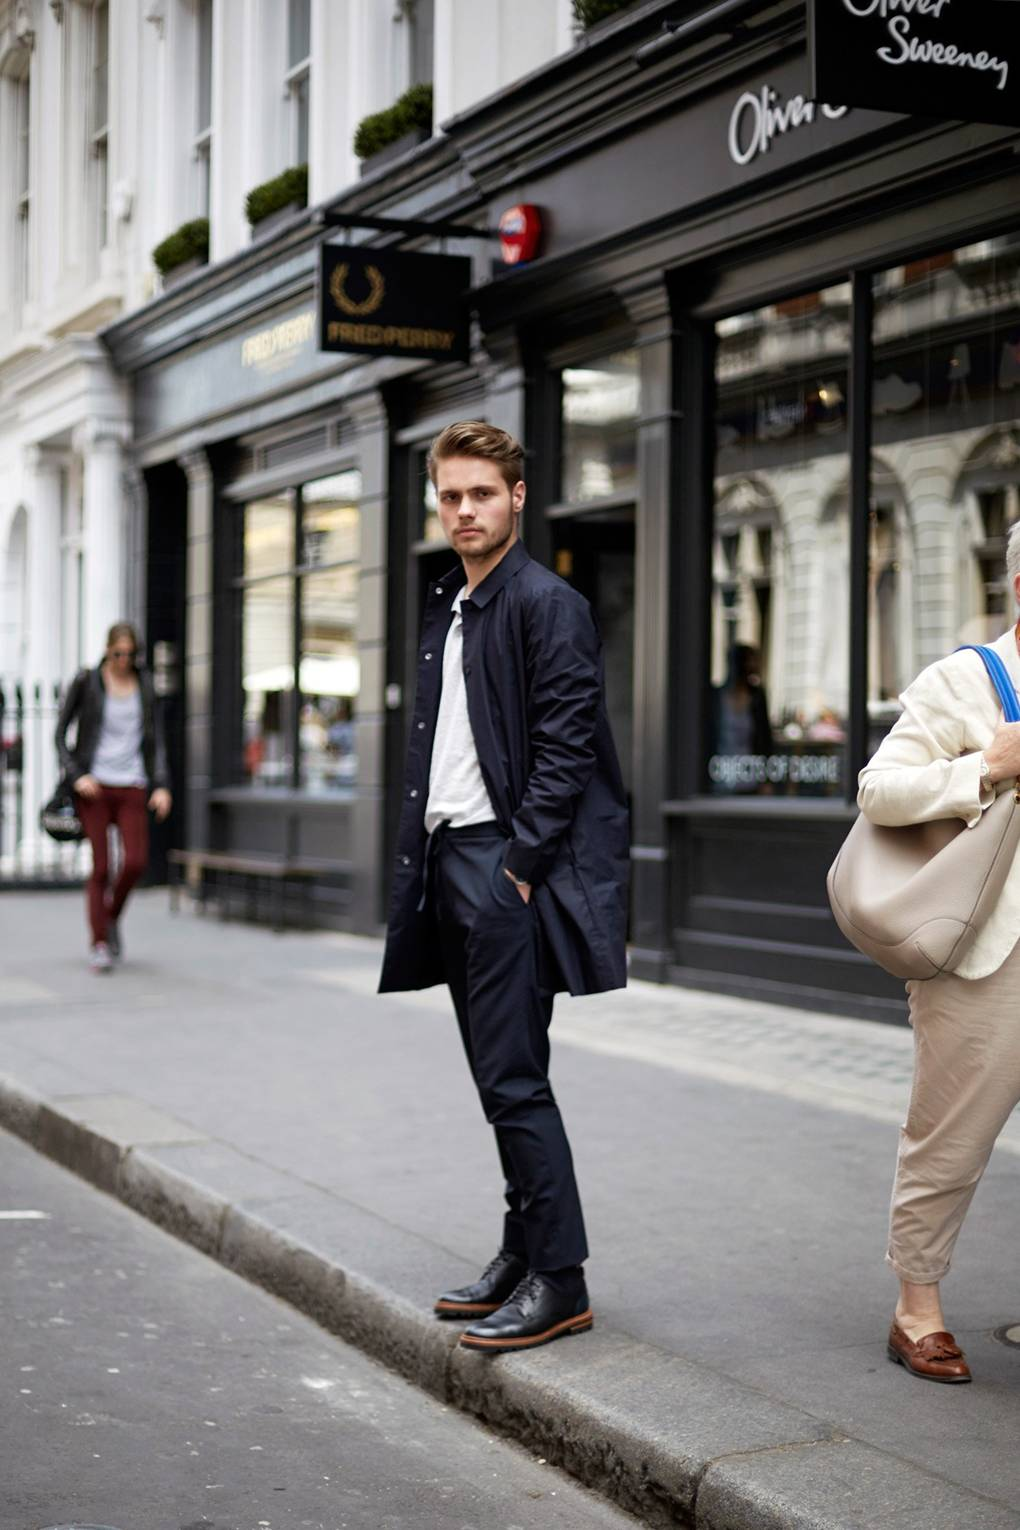 143d990ccb9b9 Mens Shops & London Shopping - Where To Shop For Menswear In London ...